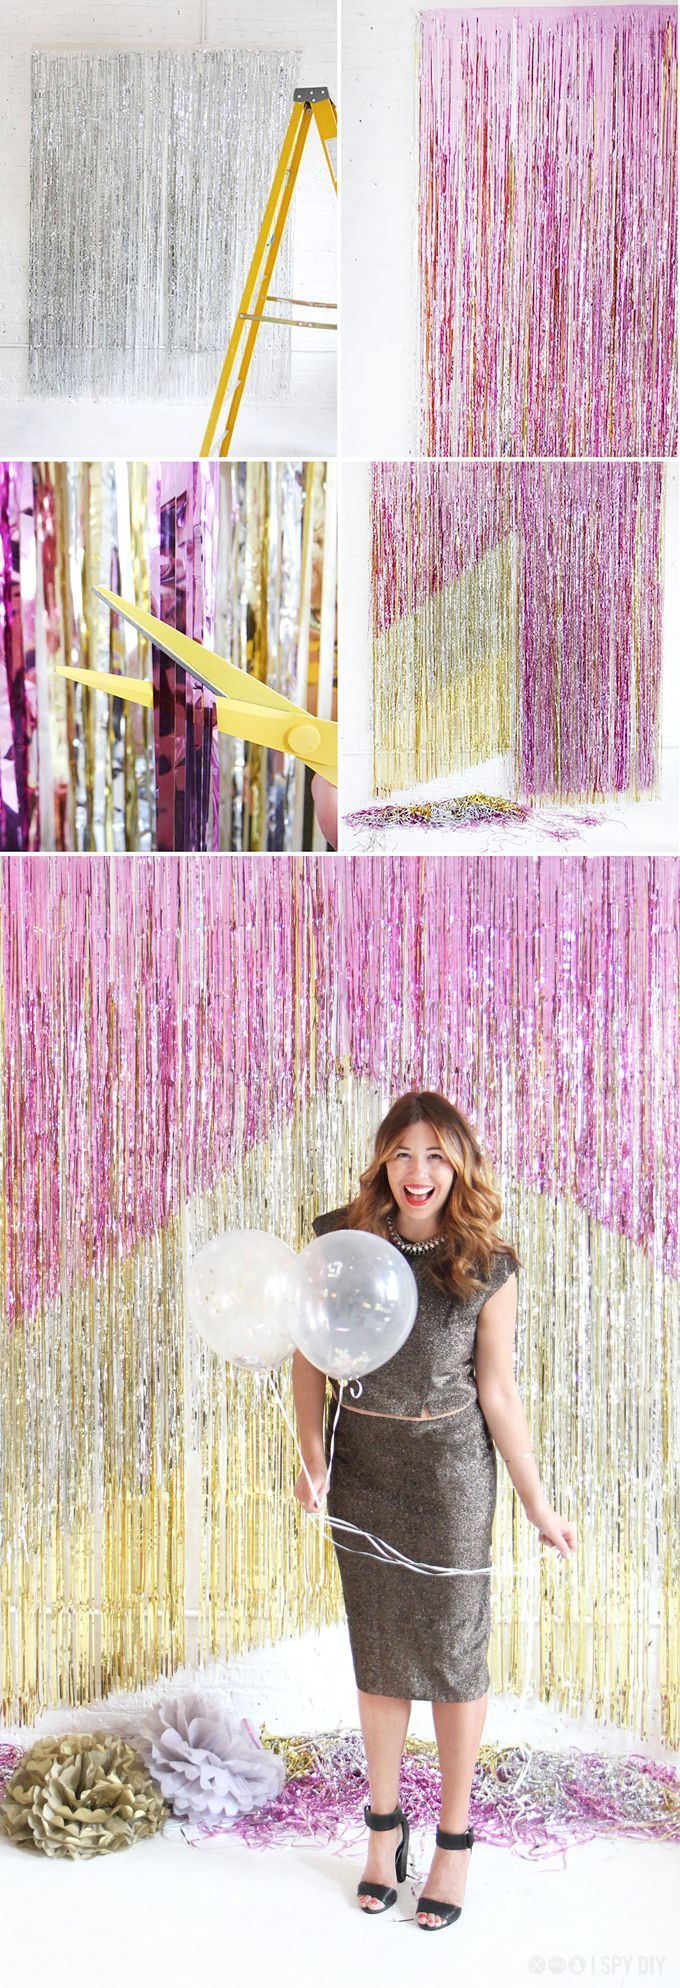 The perfect photobooth backdrop for New Year's Eve!: